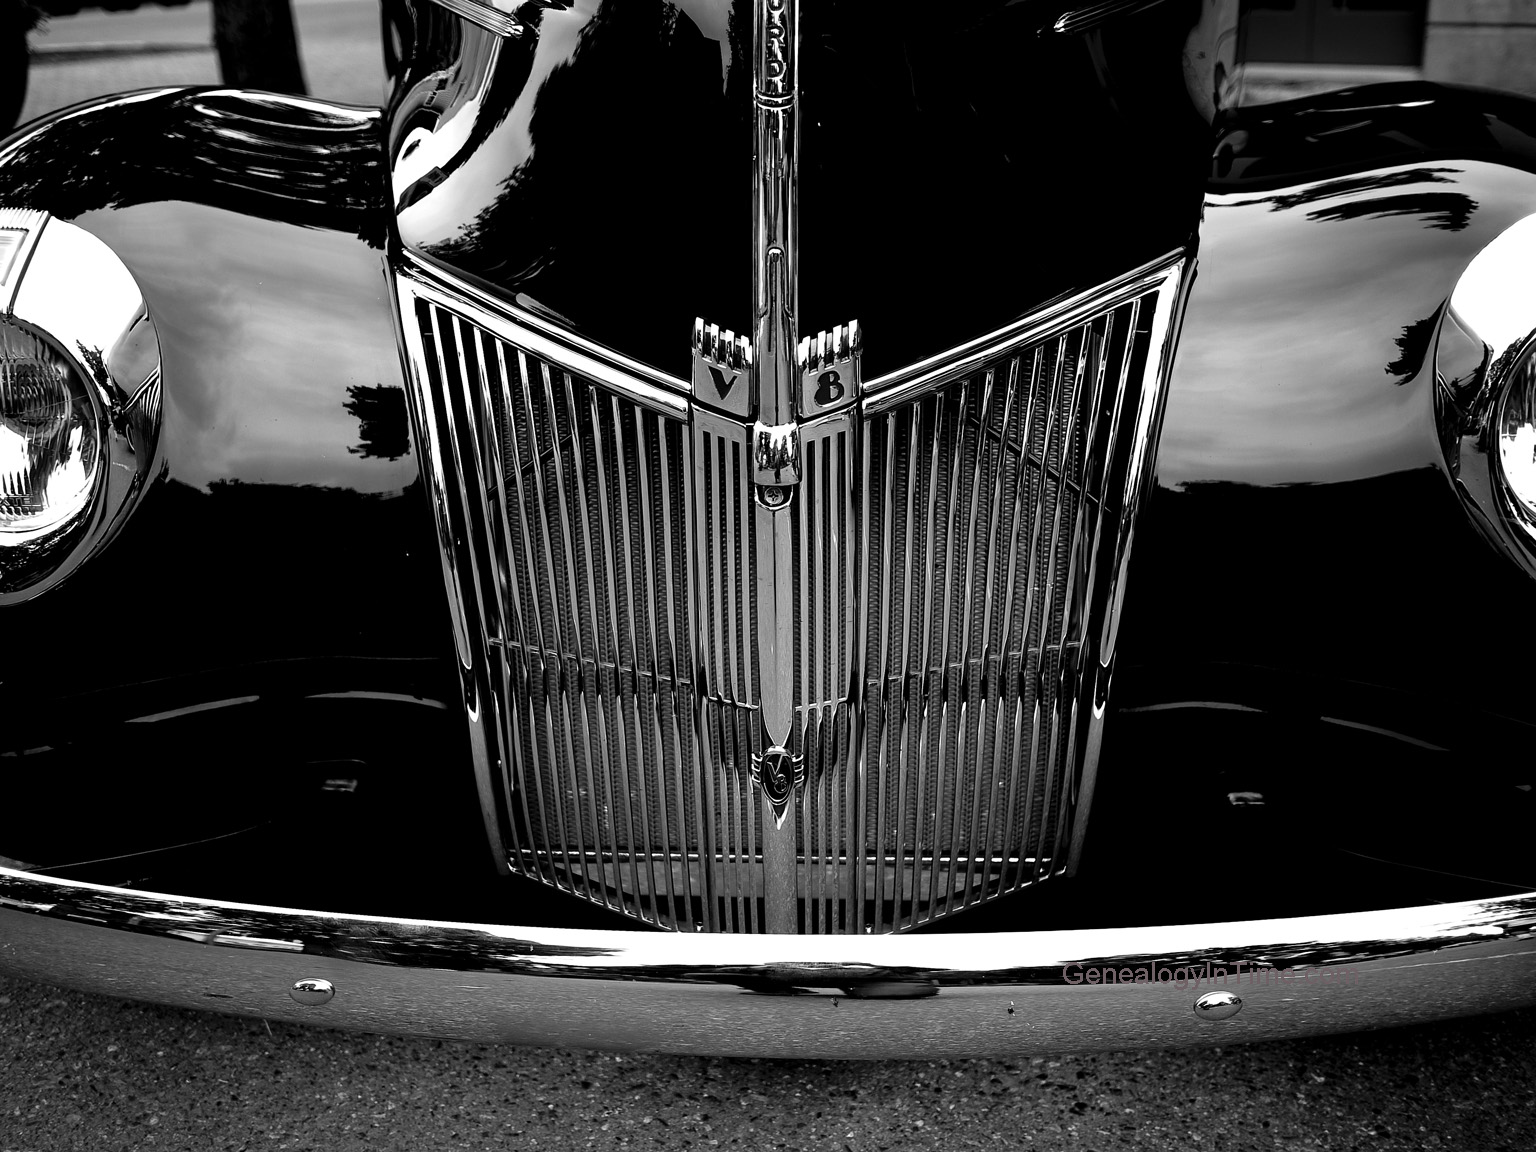 Free Classic Car Images - Classic car search